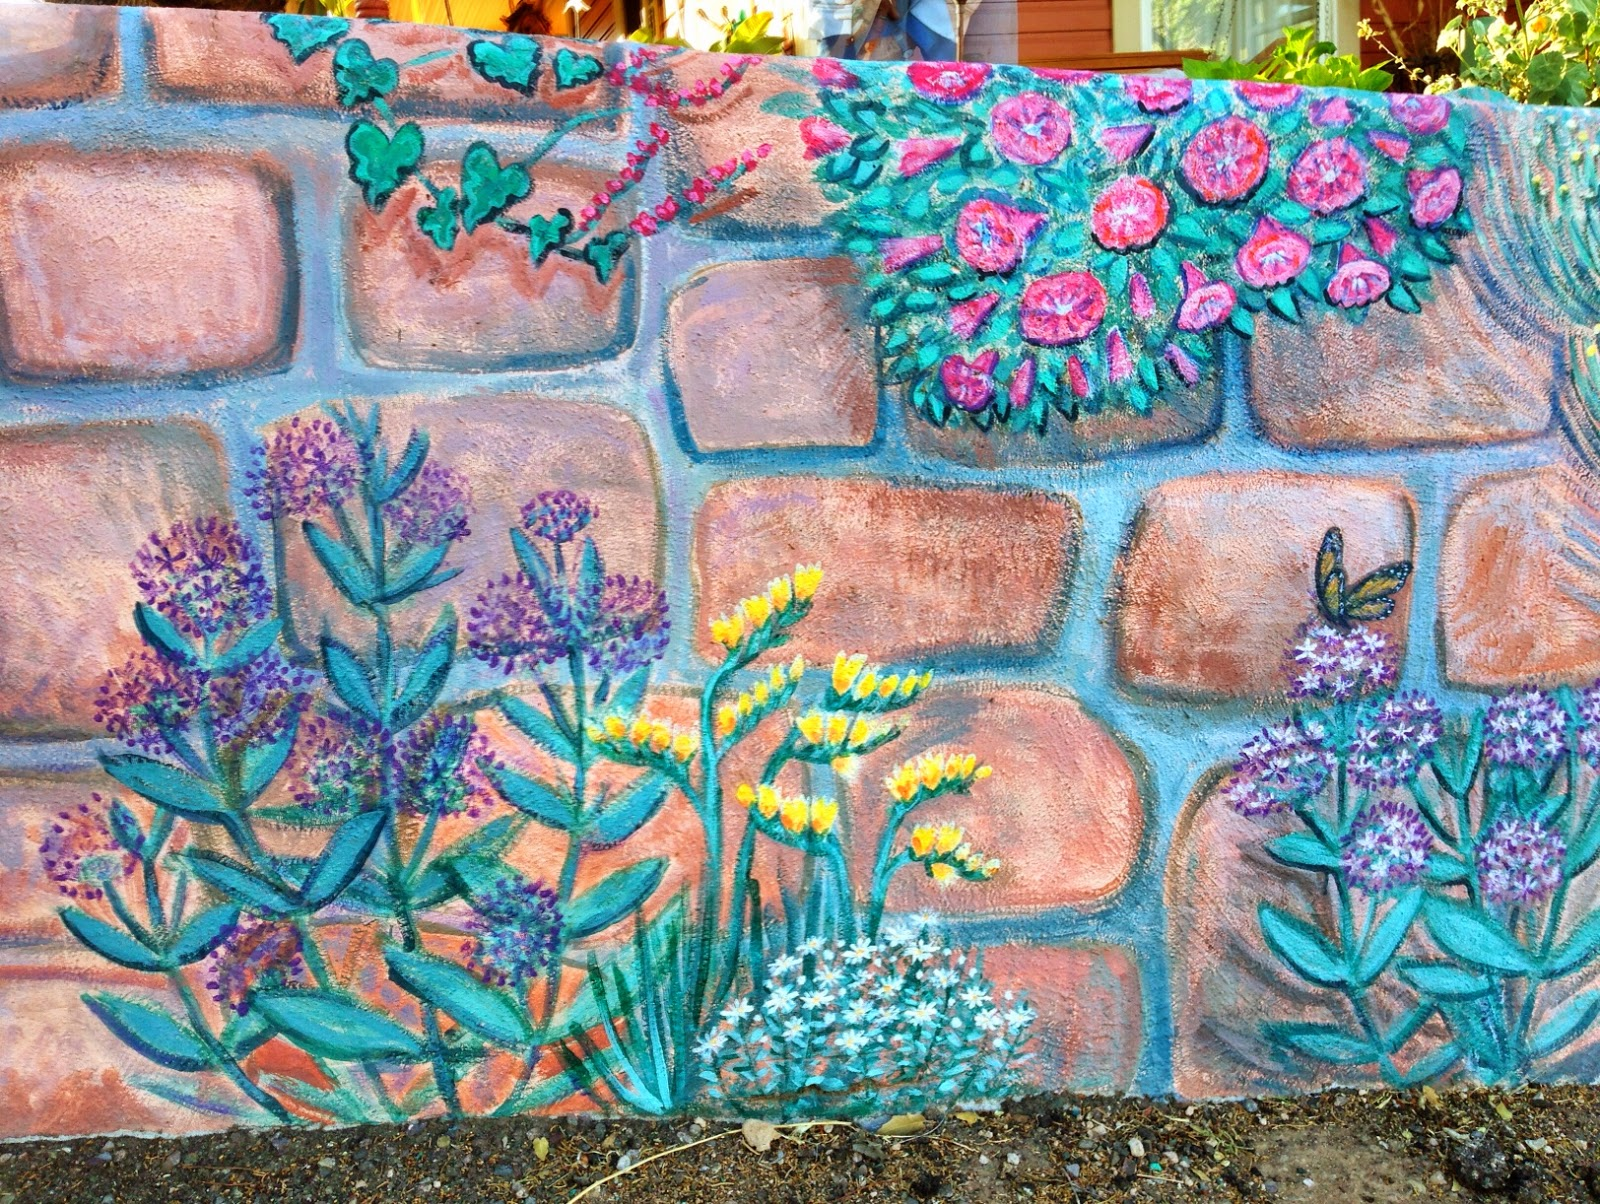 Wall Painting in Bisbee